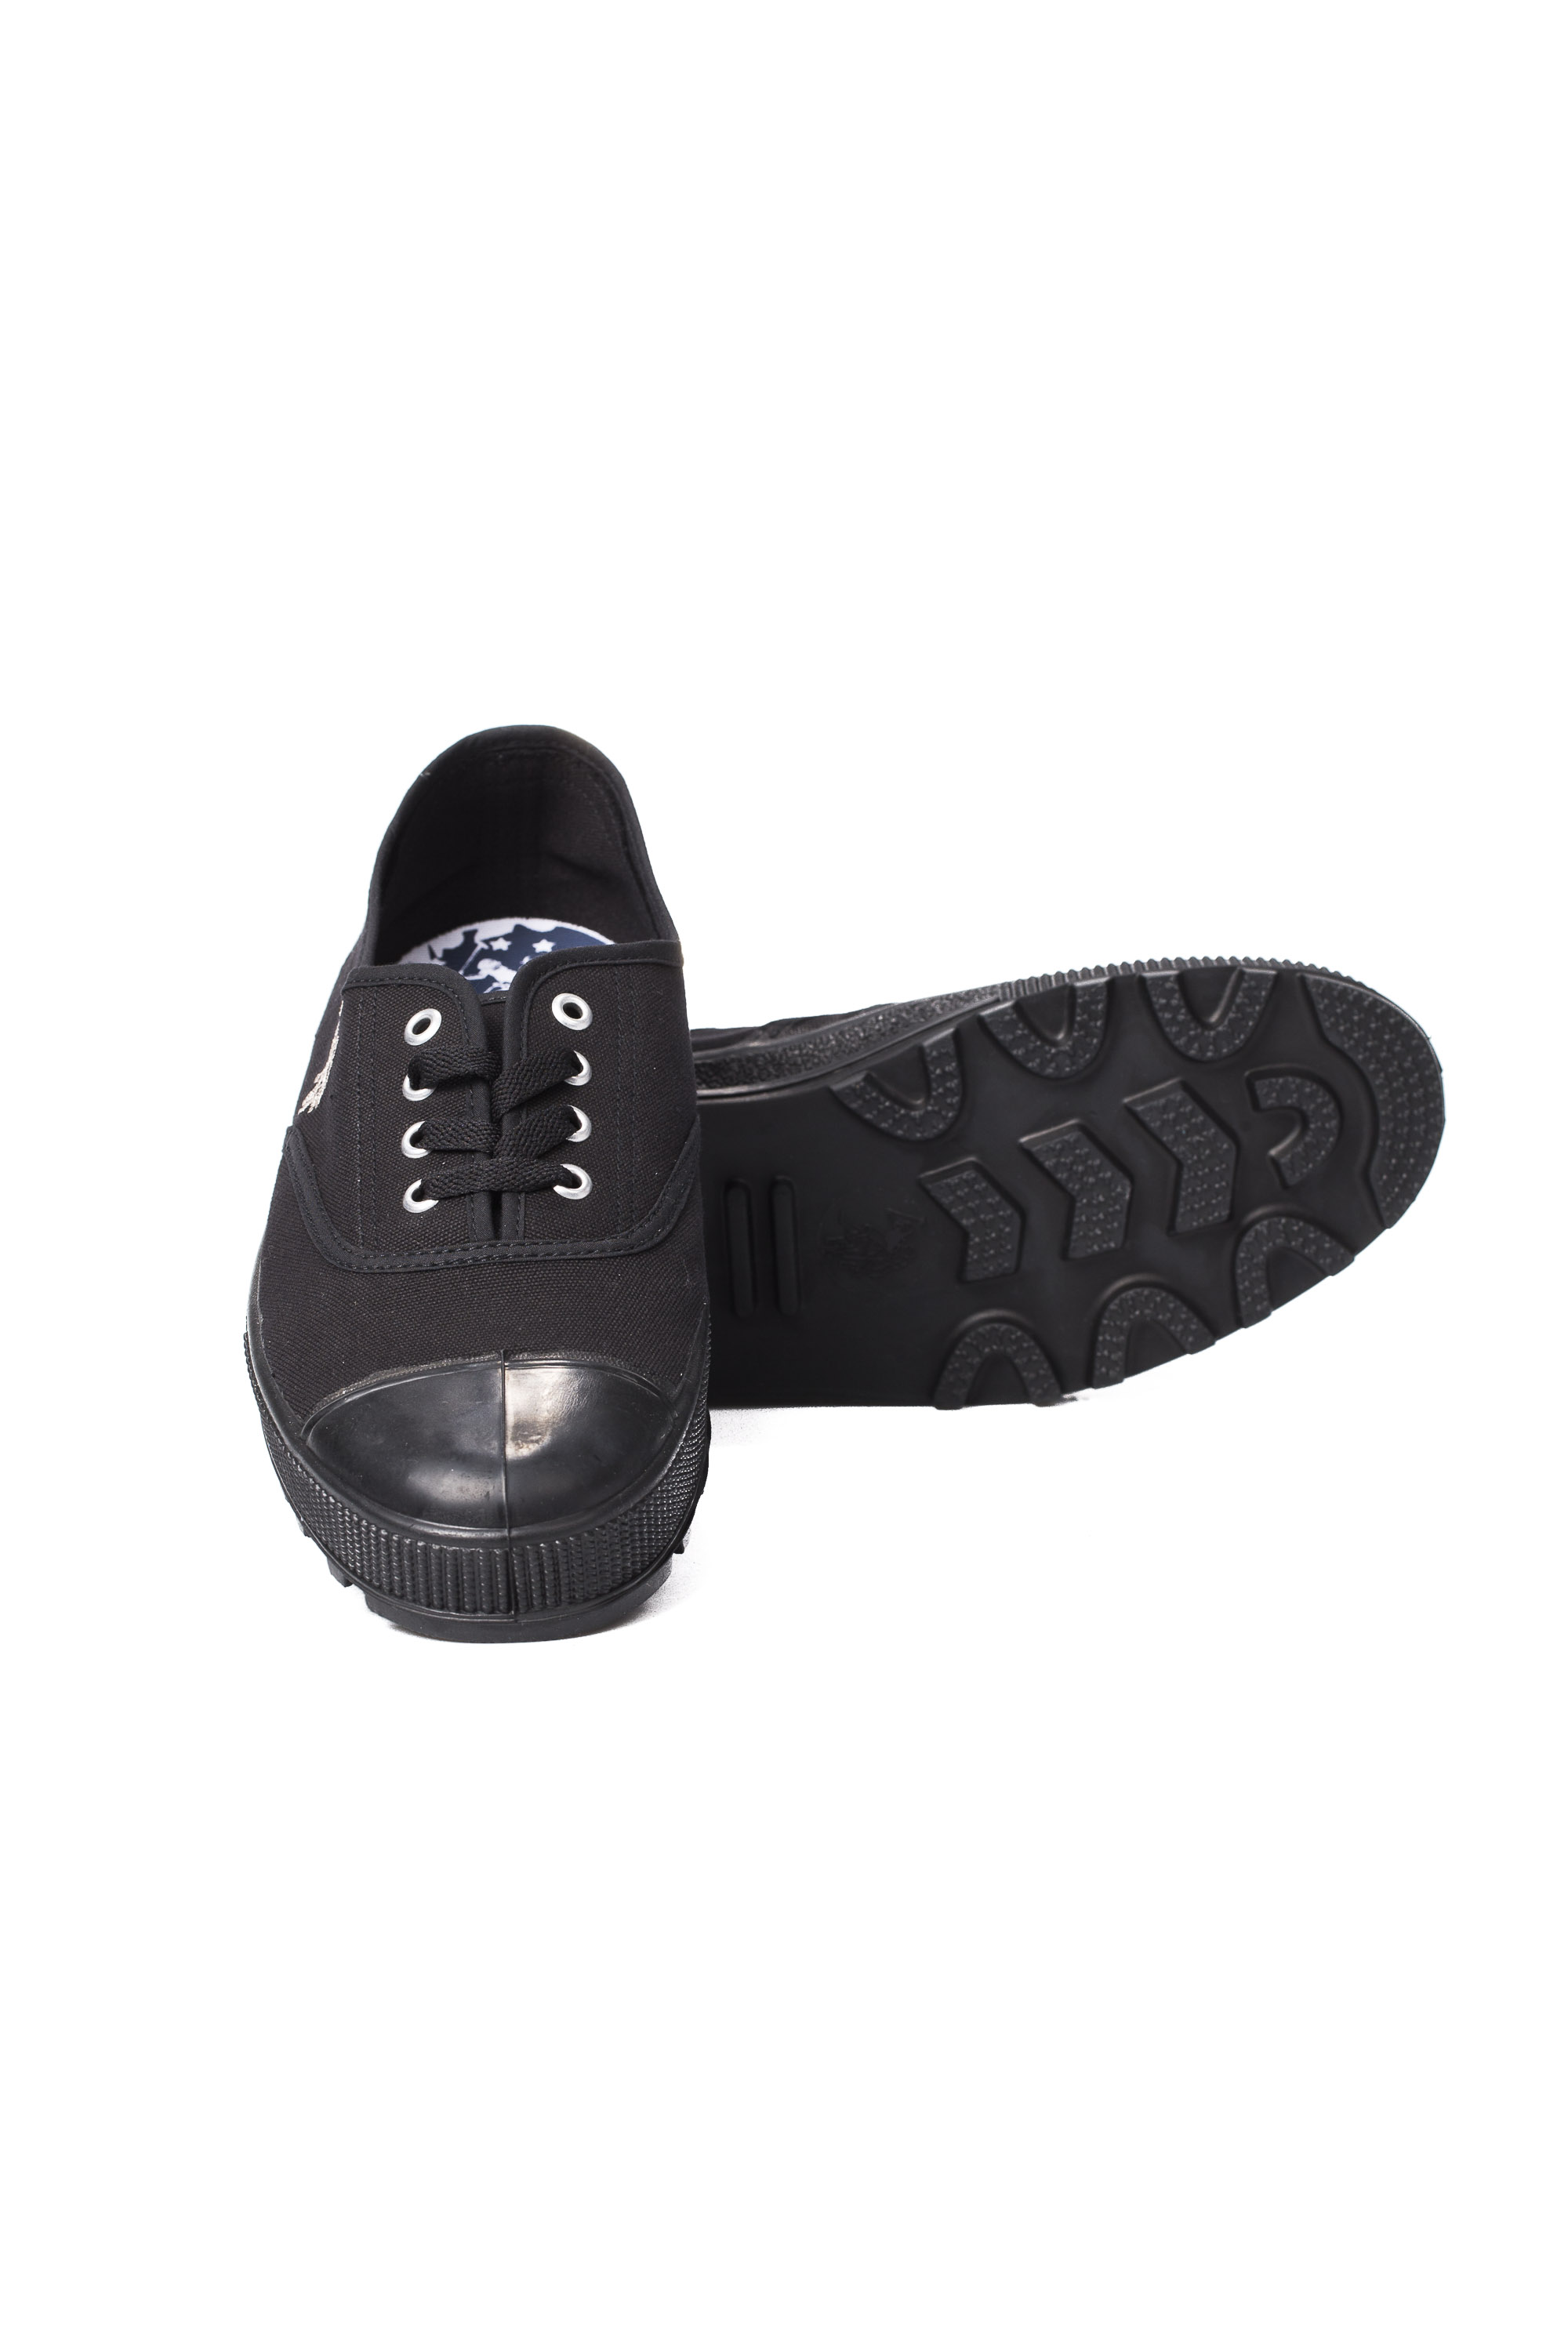 Chaussures   U.S. Polo SU29USP10005_SPARE4299S5-C1 black